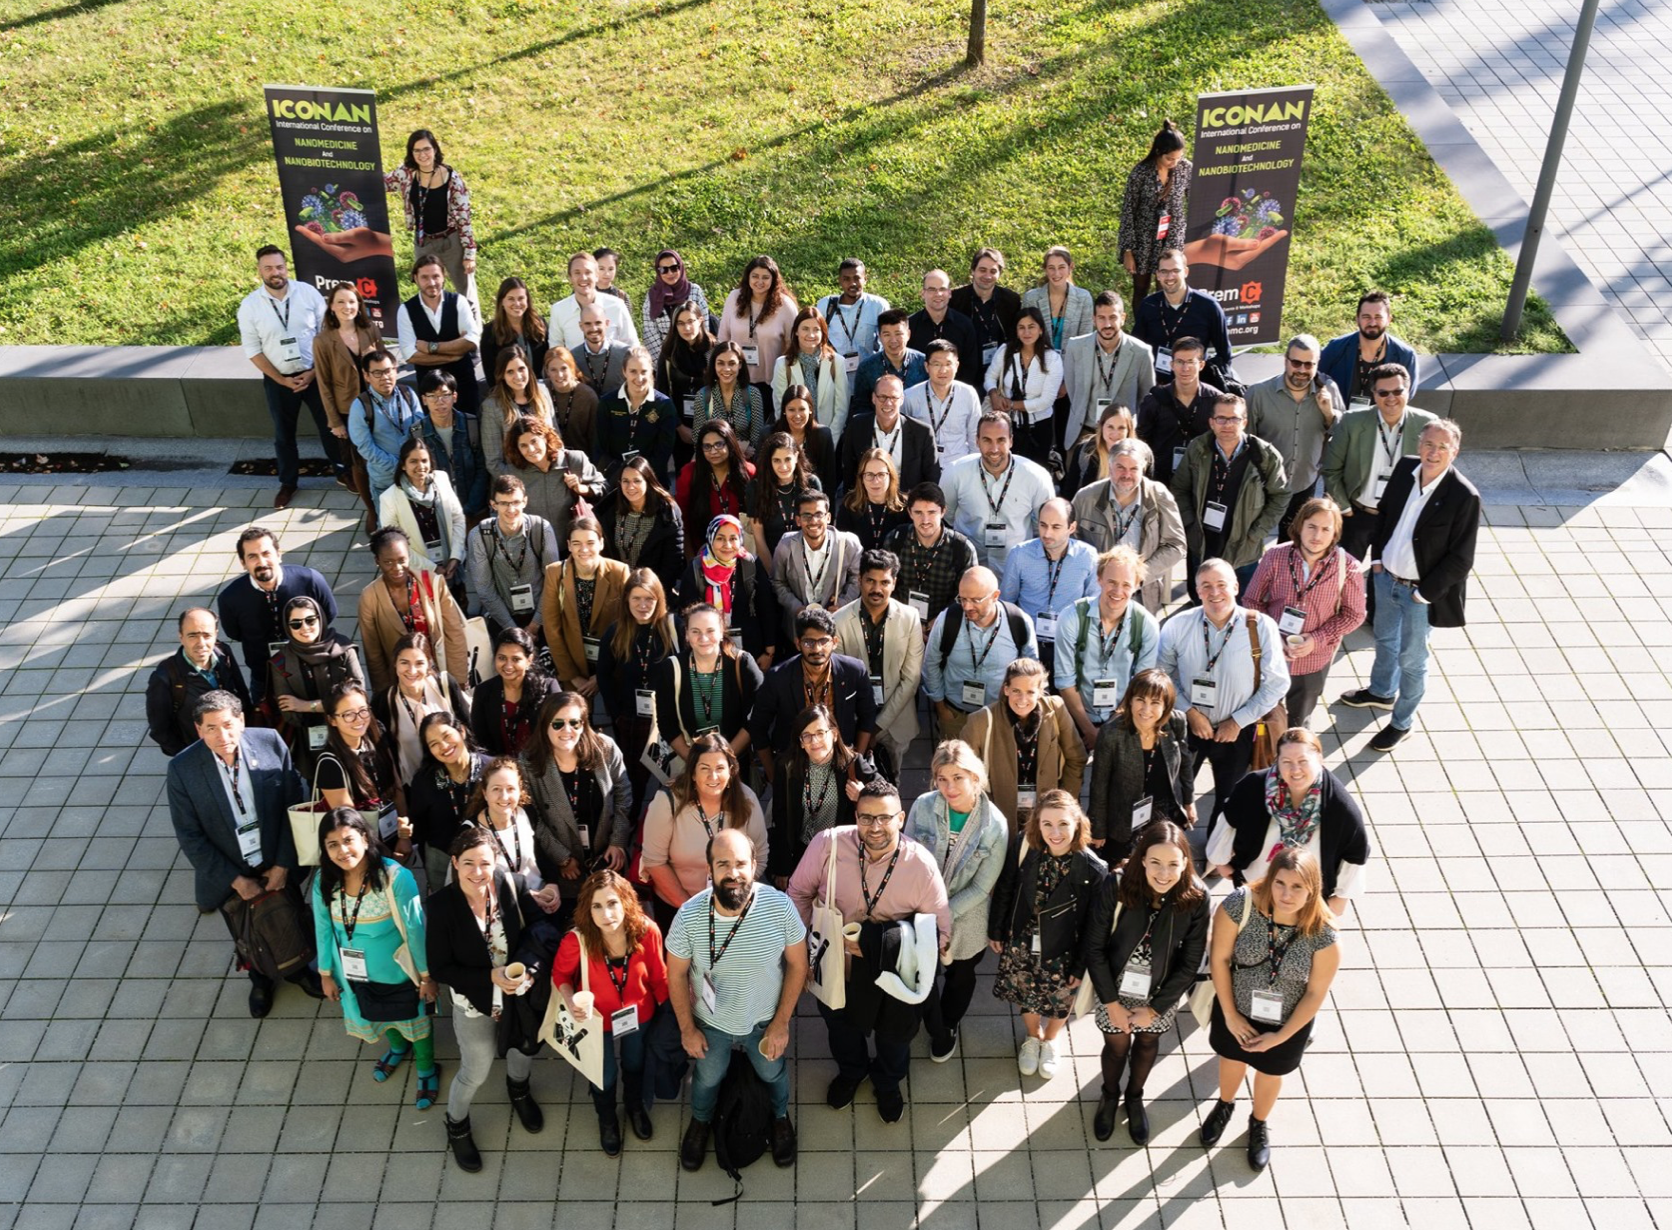 Ahead Therapeutics attended ICONAN 2019 International Conference on Nanomedicine and Nanobiotechnology – ICONAN 16th-18th October